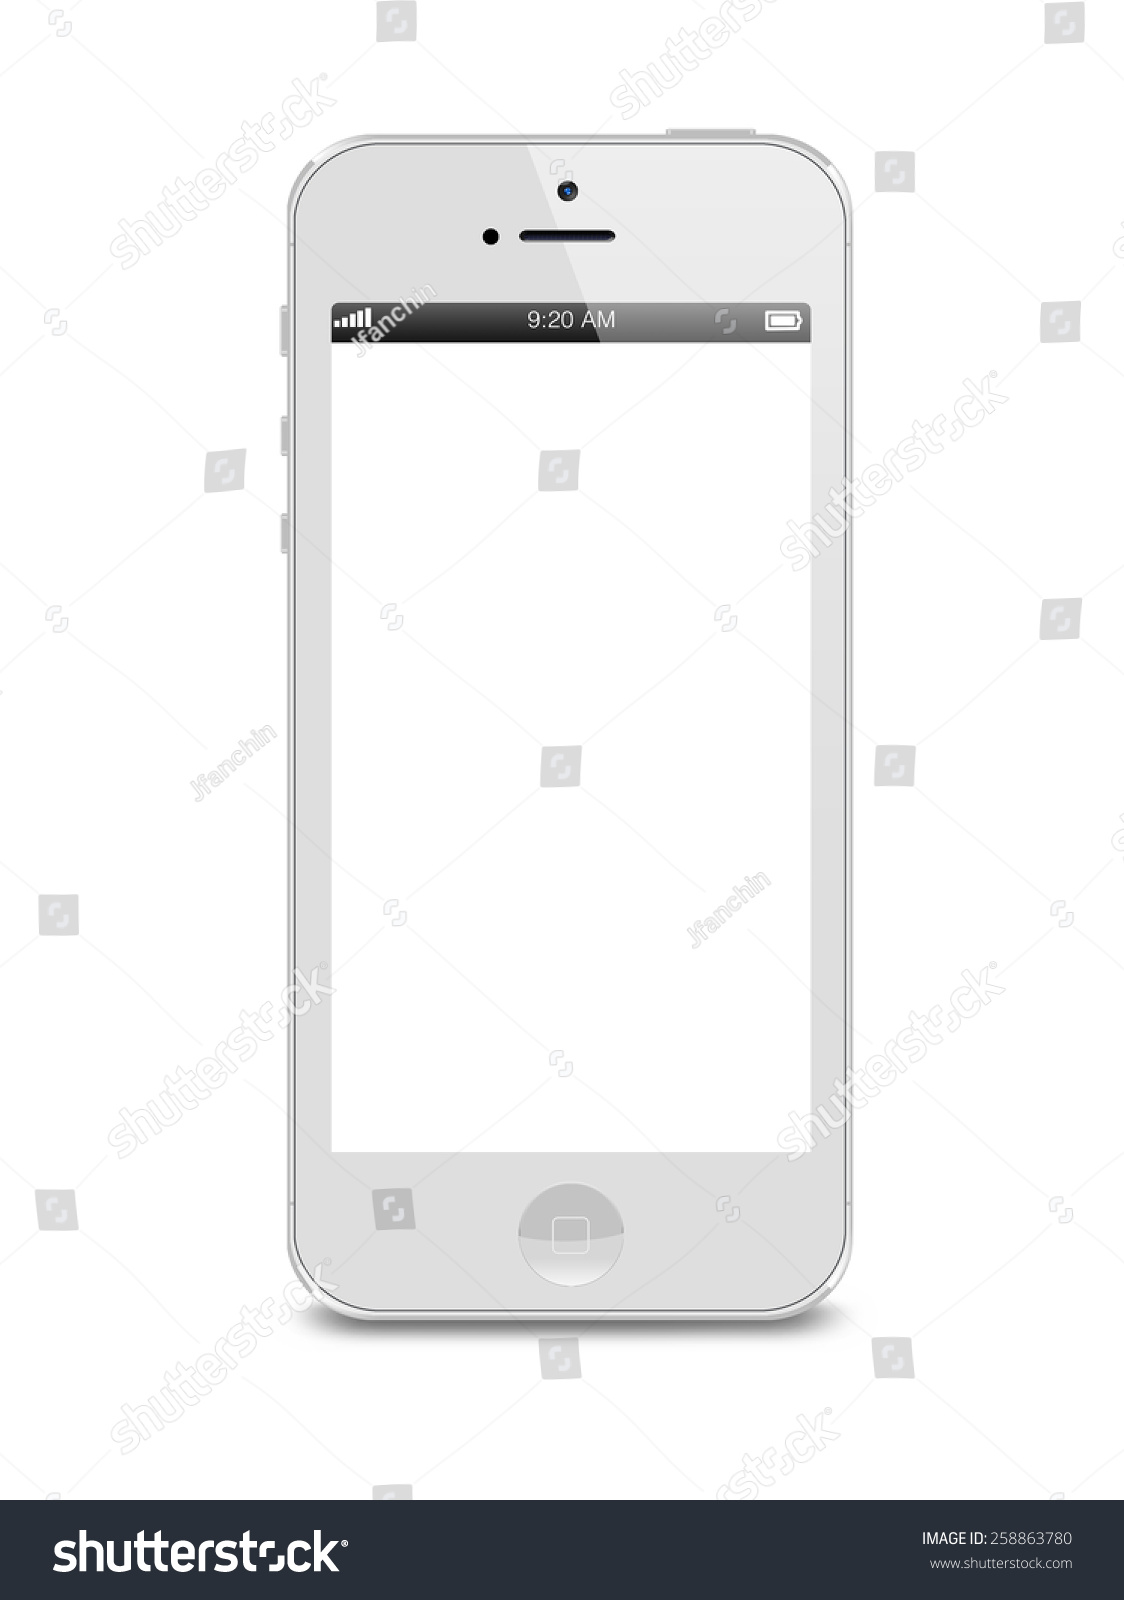 iphone white screen portlouis mauritius march 01 2015 white stock photo 12491